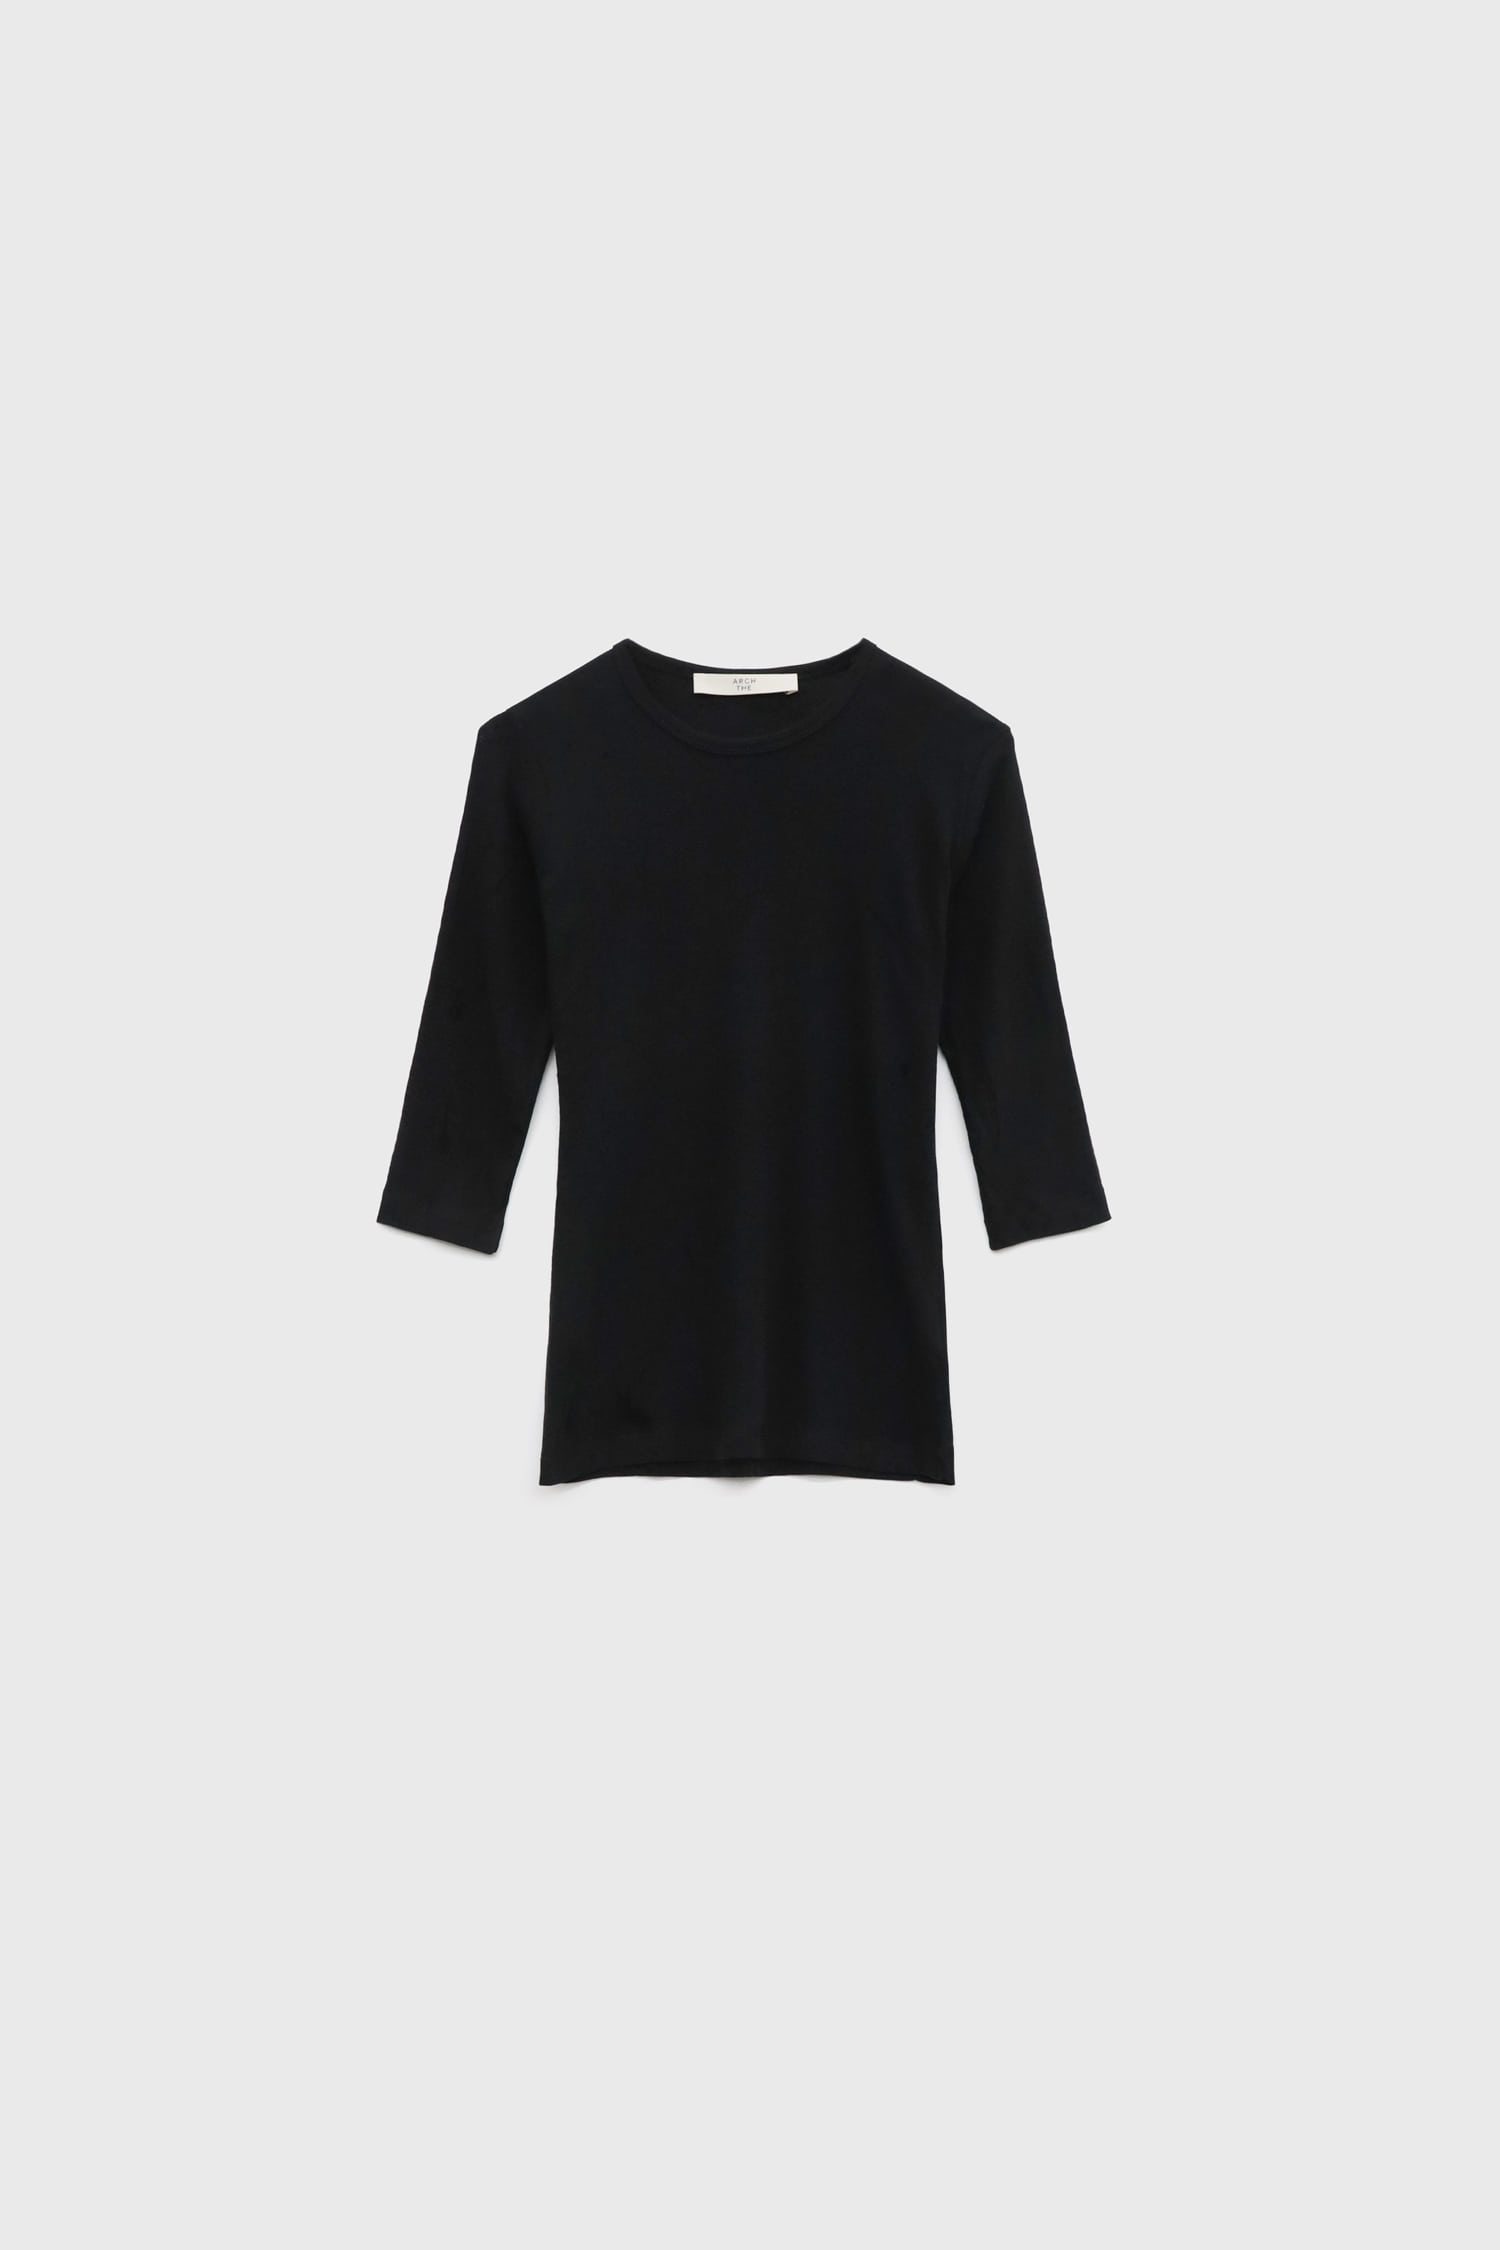 Three-quarter sleeved jersey top